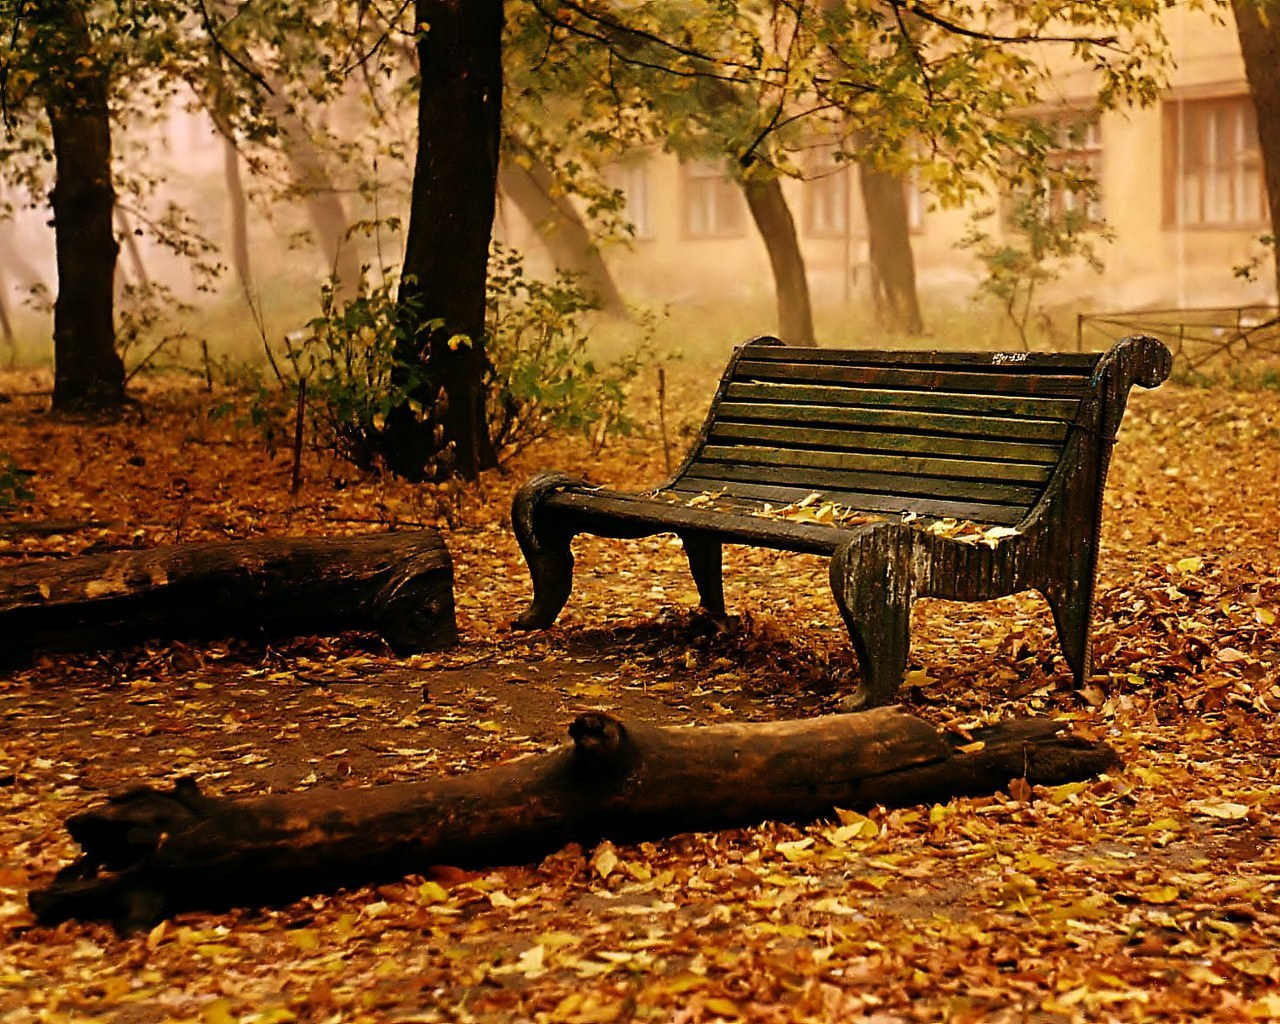 Autumn wallpaper   Autumn Wallpaper 9444937 1280x1024